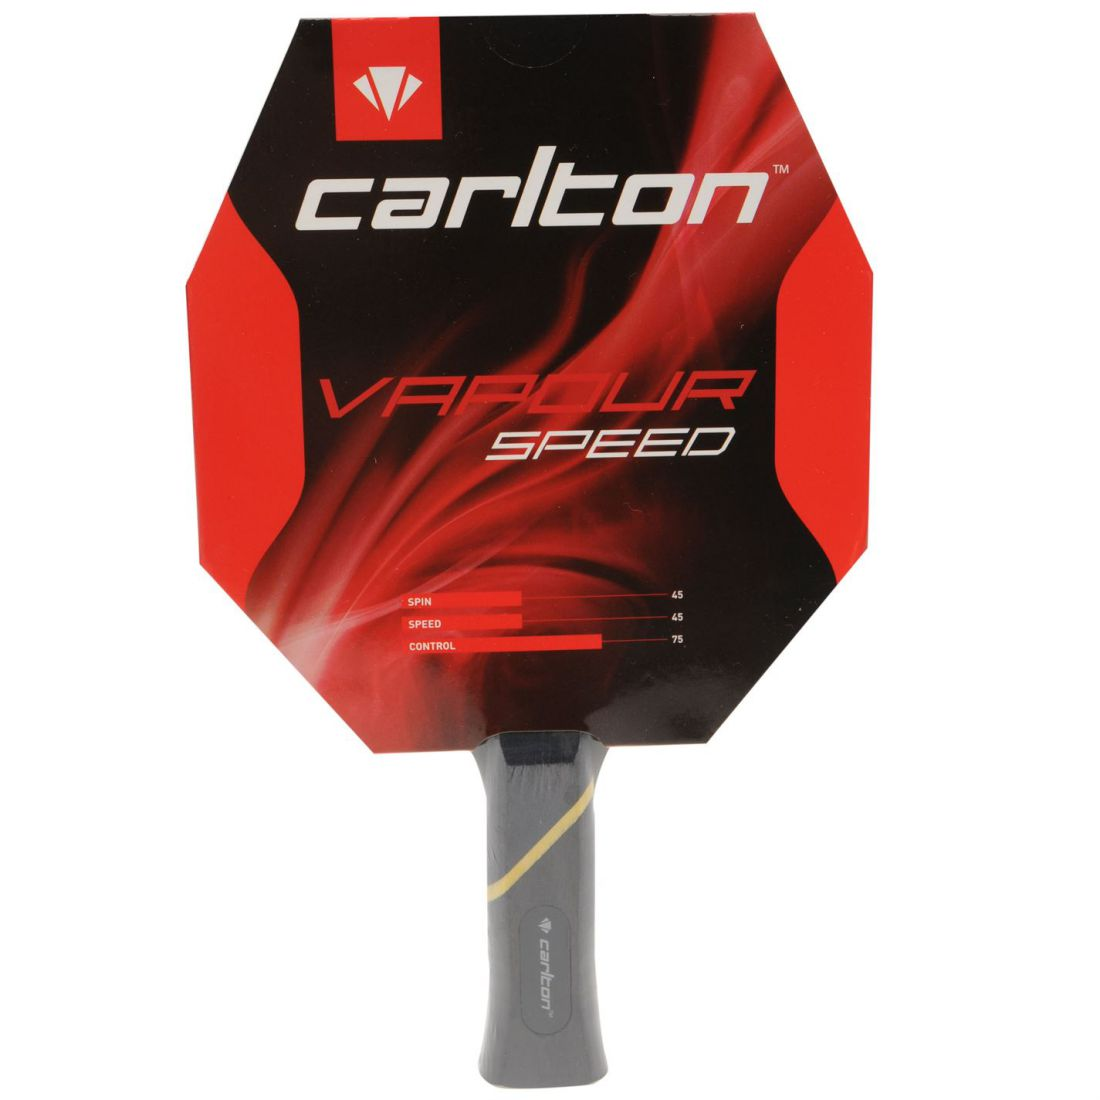 bc376bf336d4 Carlton Unisex Vapour Sp TTBat00 Table Tennis Bat 5057668899779